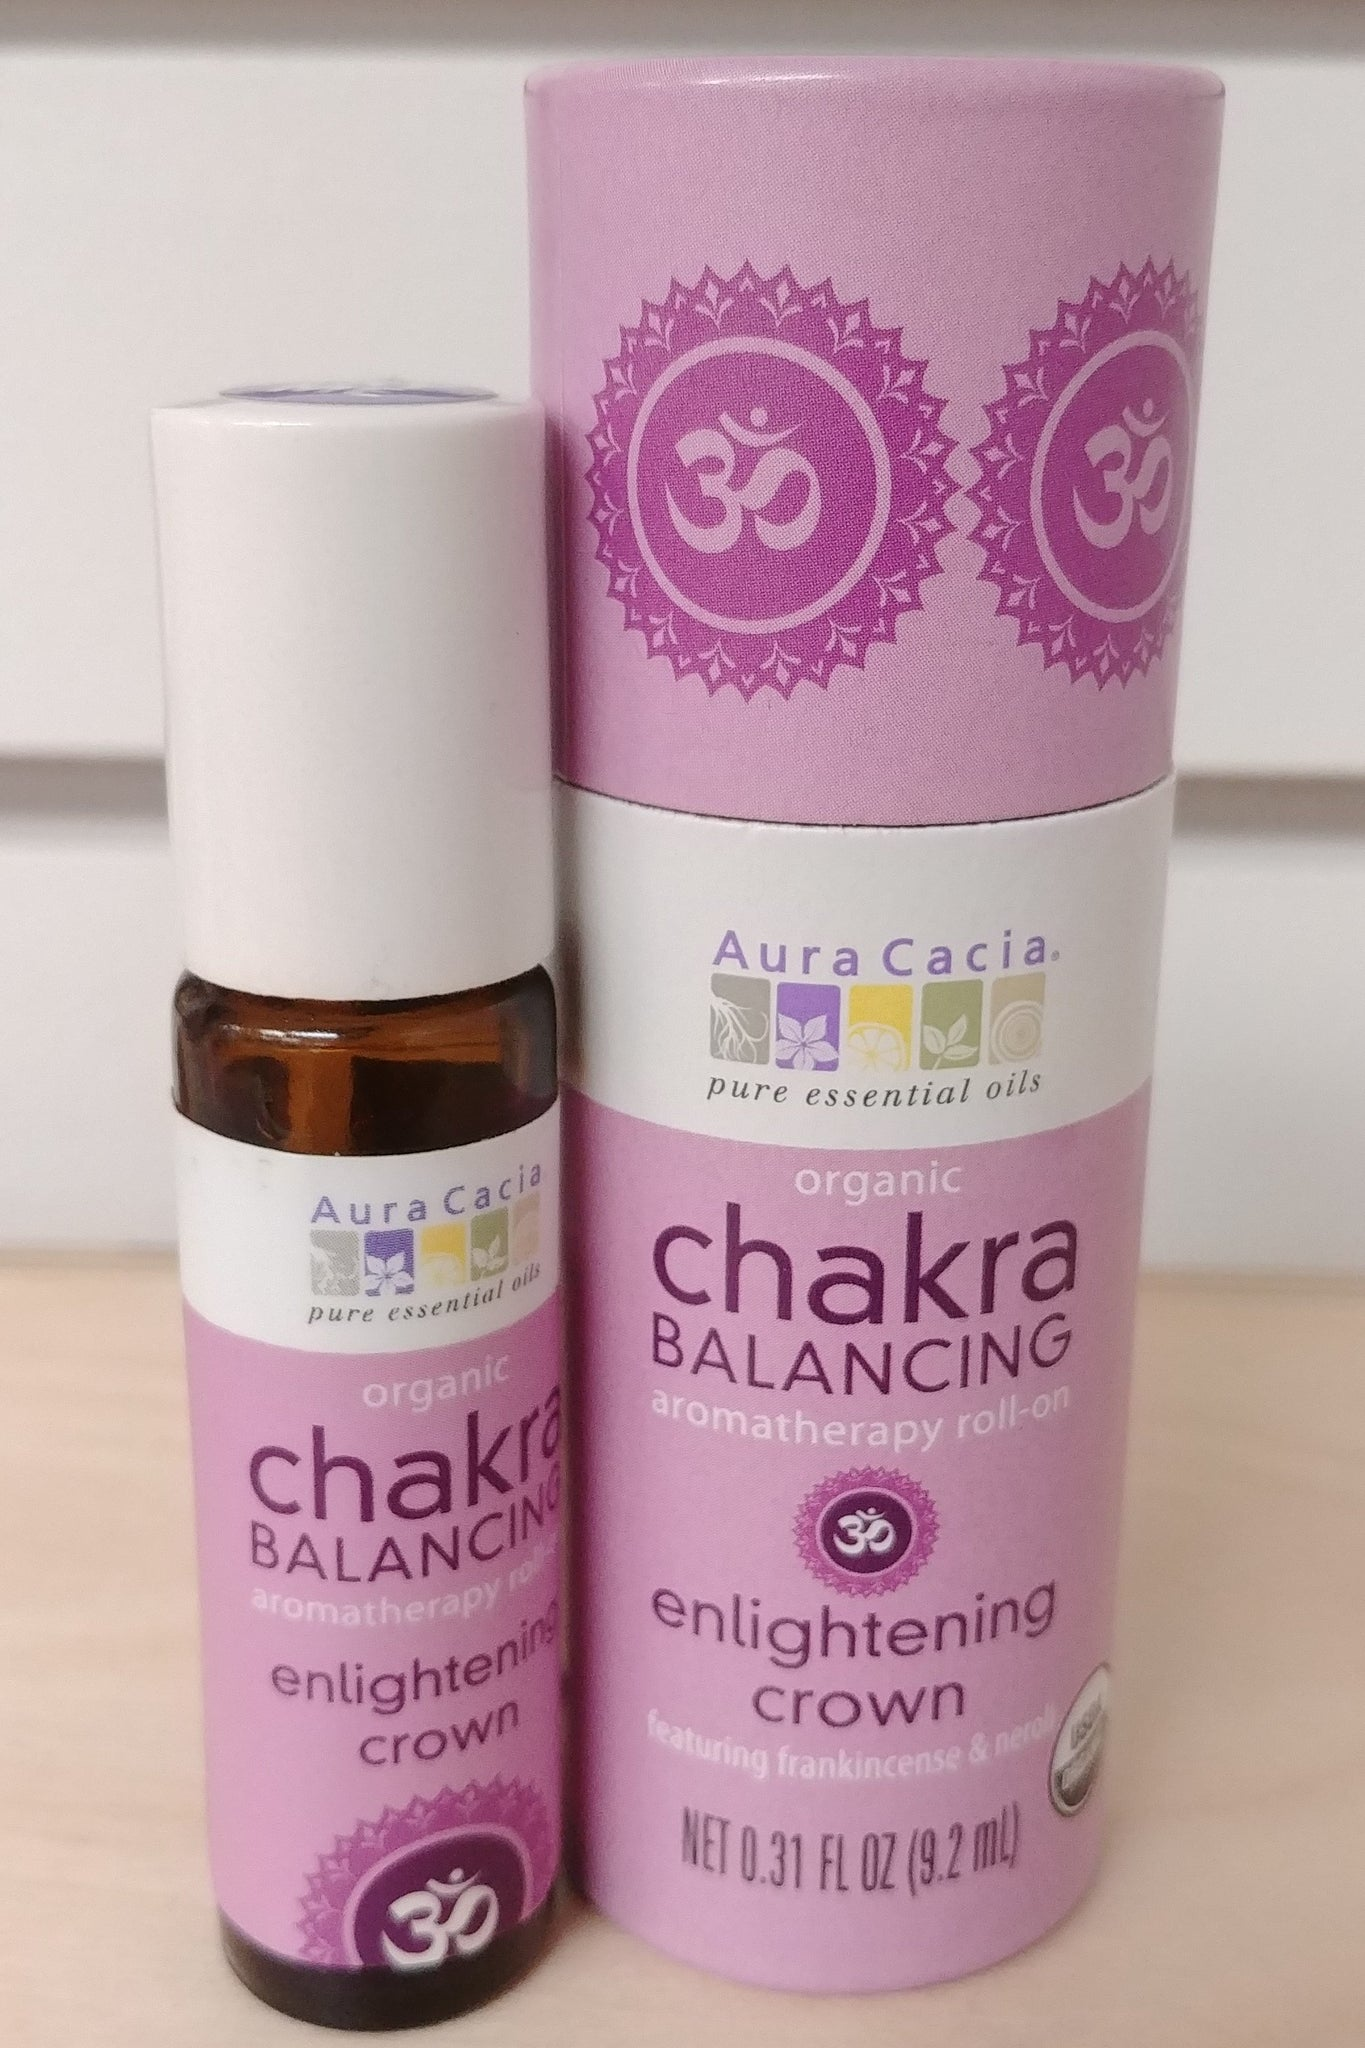 Crown Chakra Enlightening Aromatherapy Roll-On